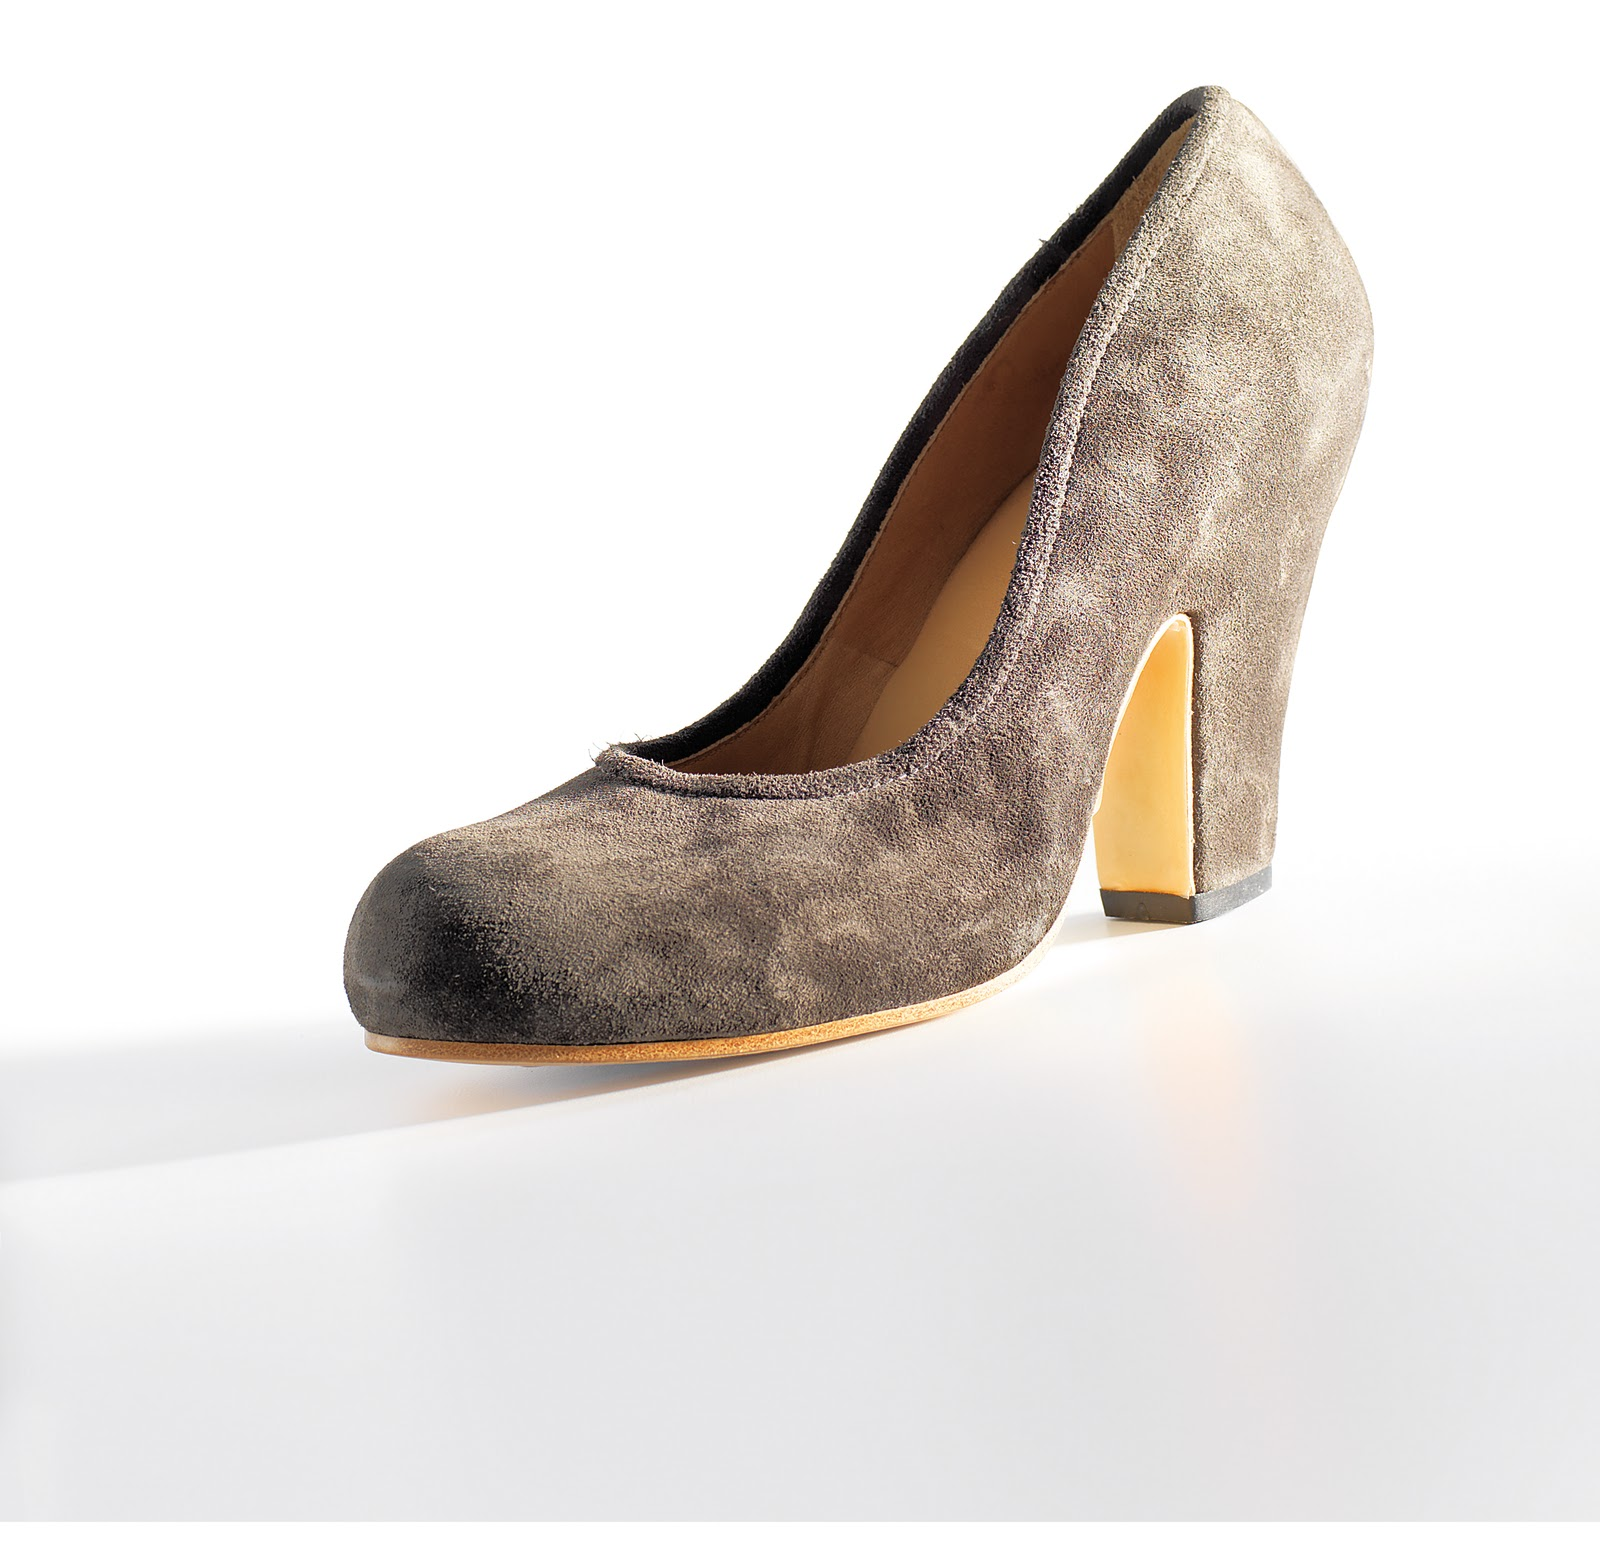 Http Www Camper Com Int Women Shoes Family And Friends